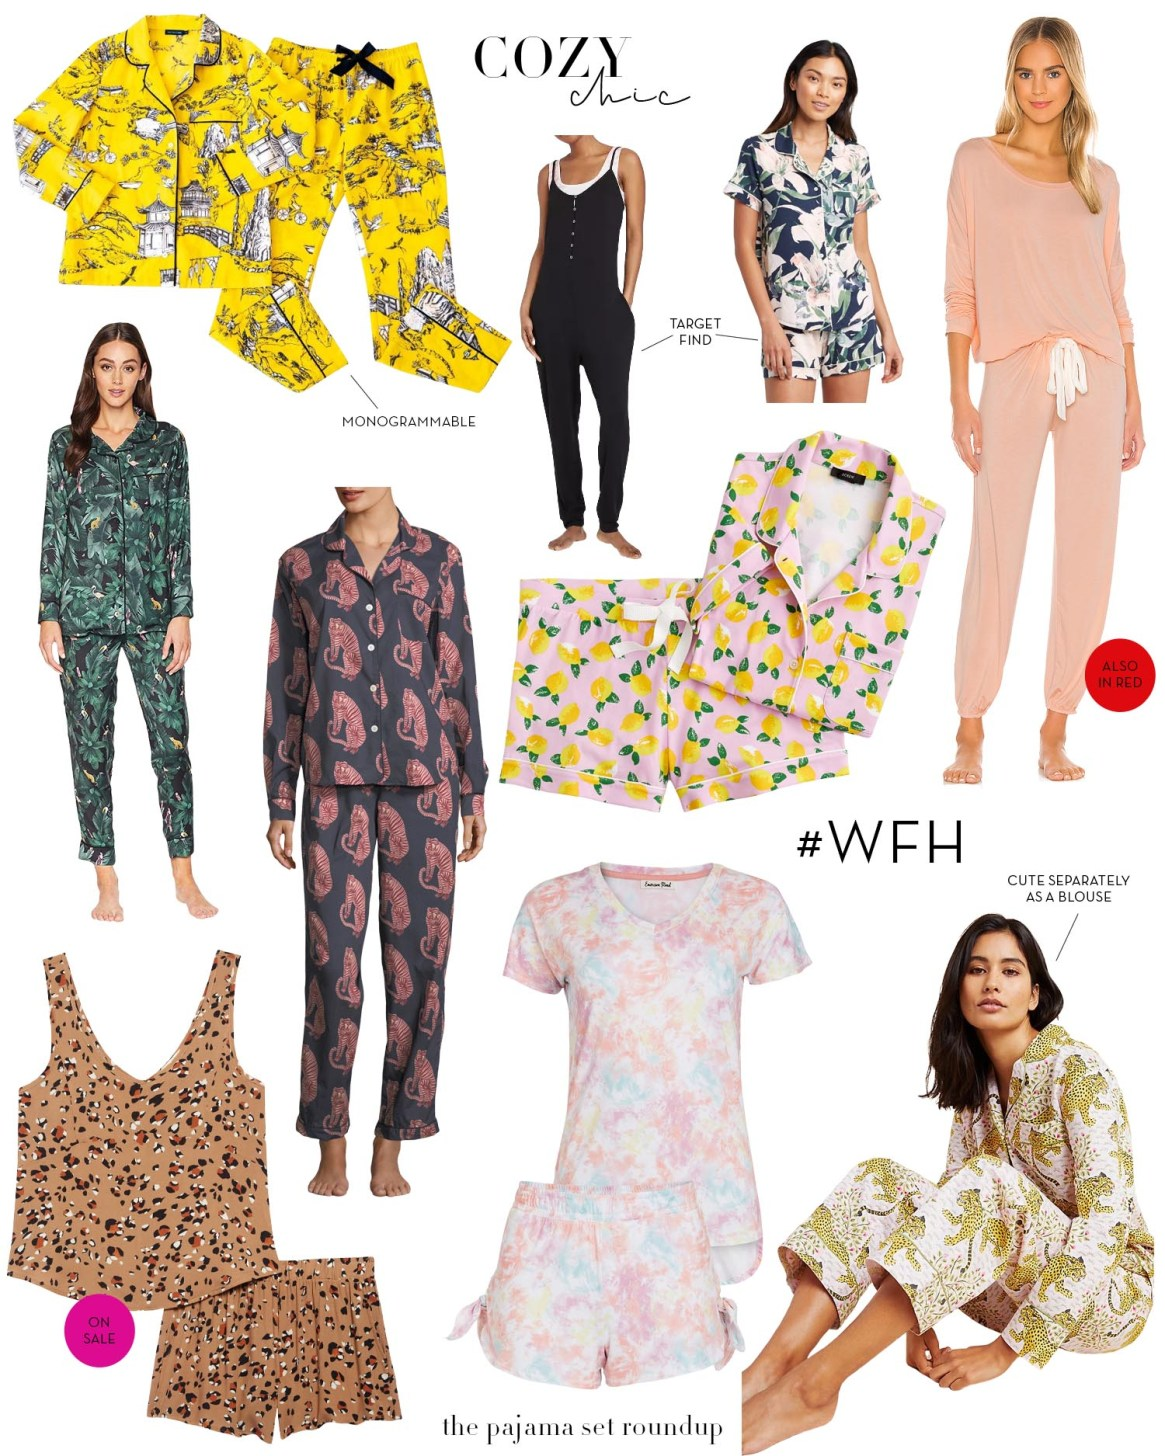 COZY CHIC- PAJAMA SET ROUNDUP